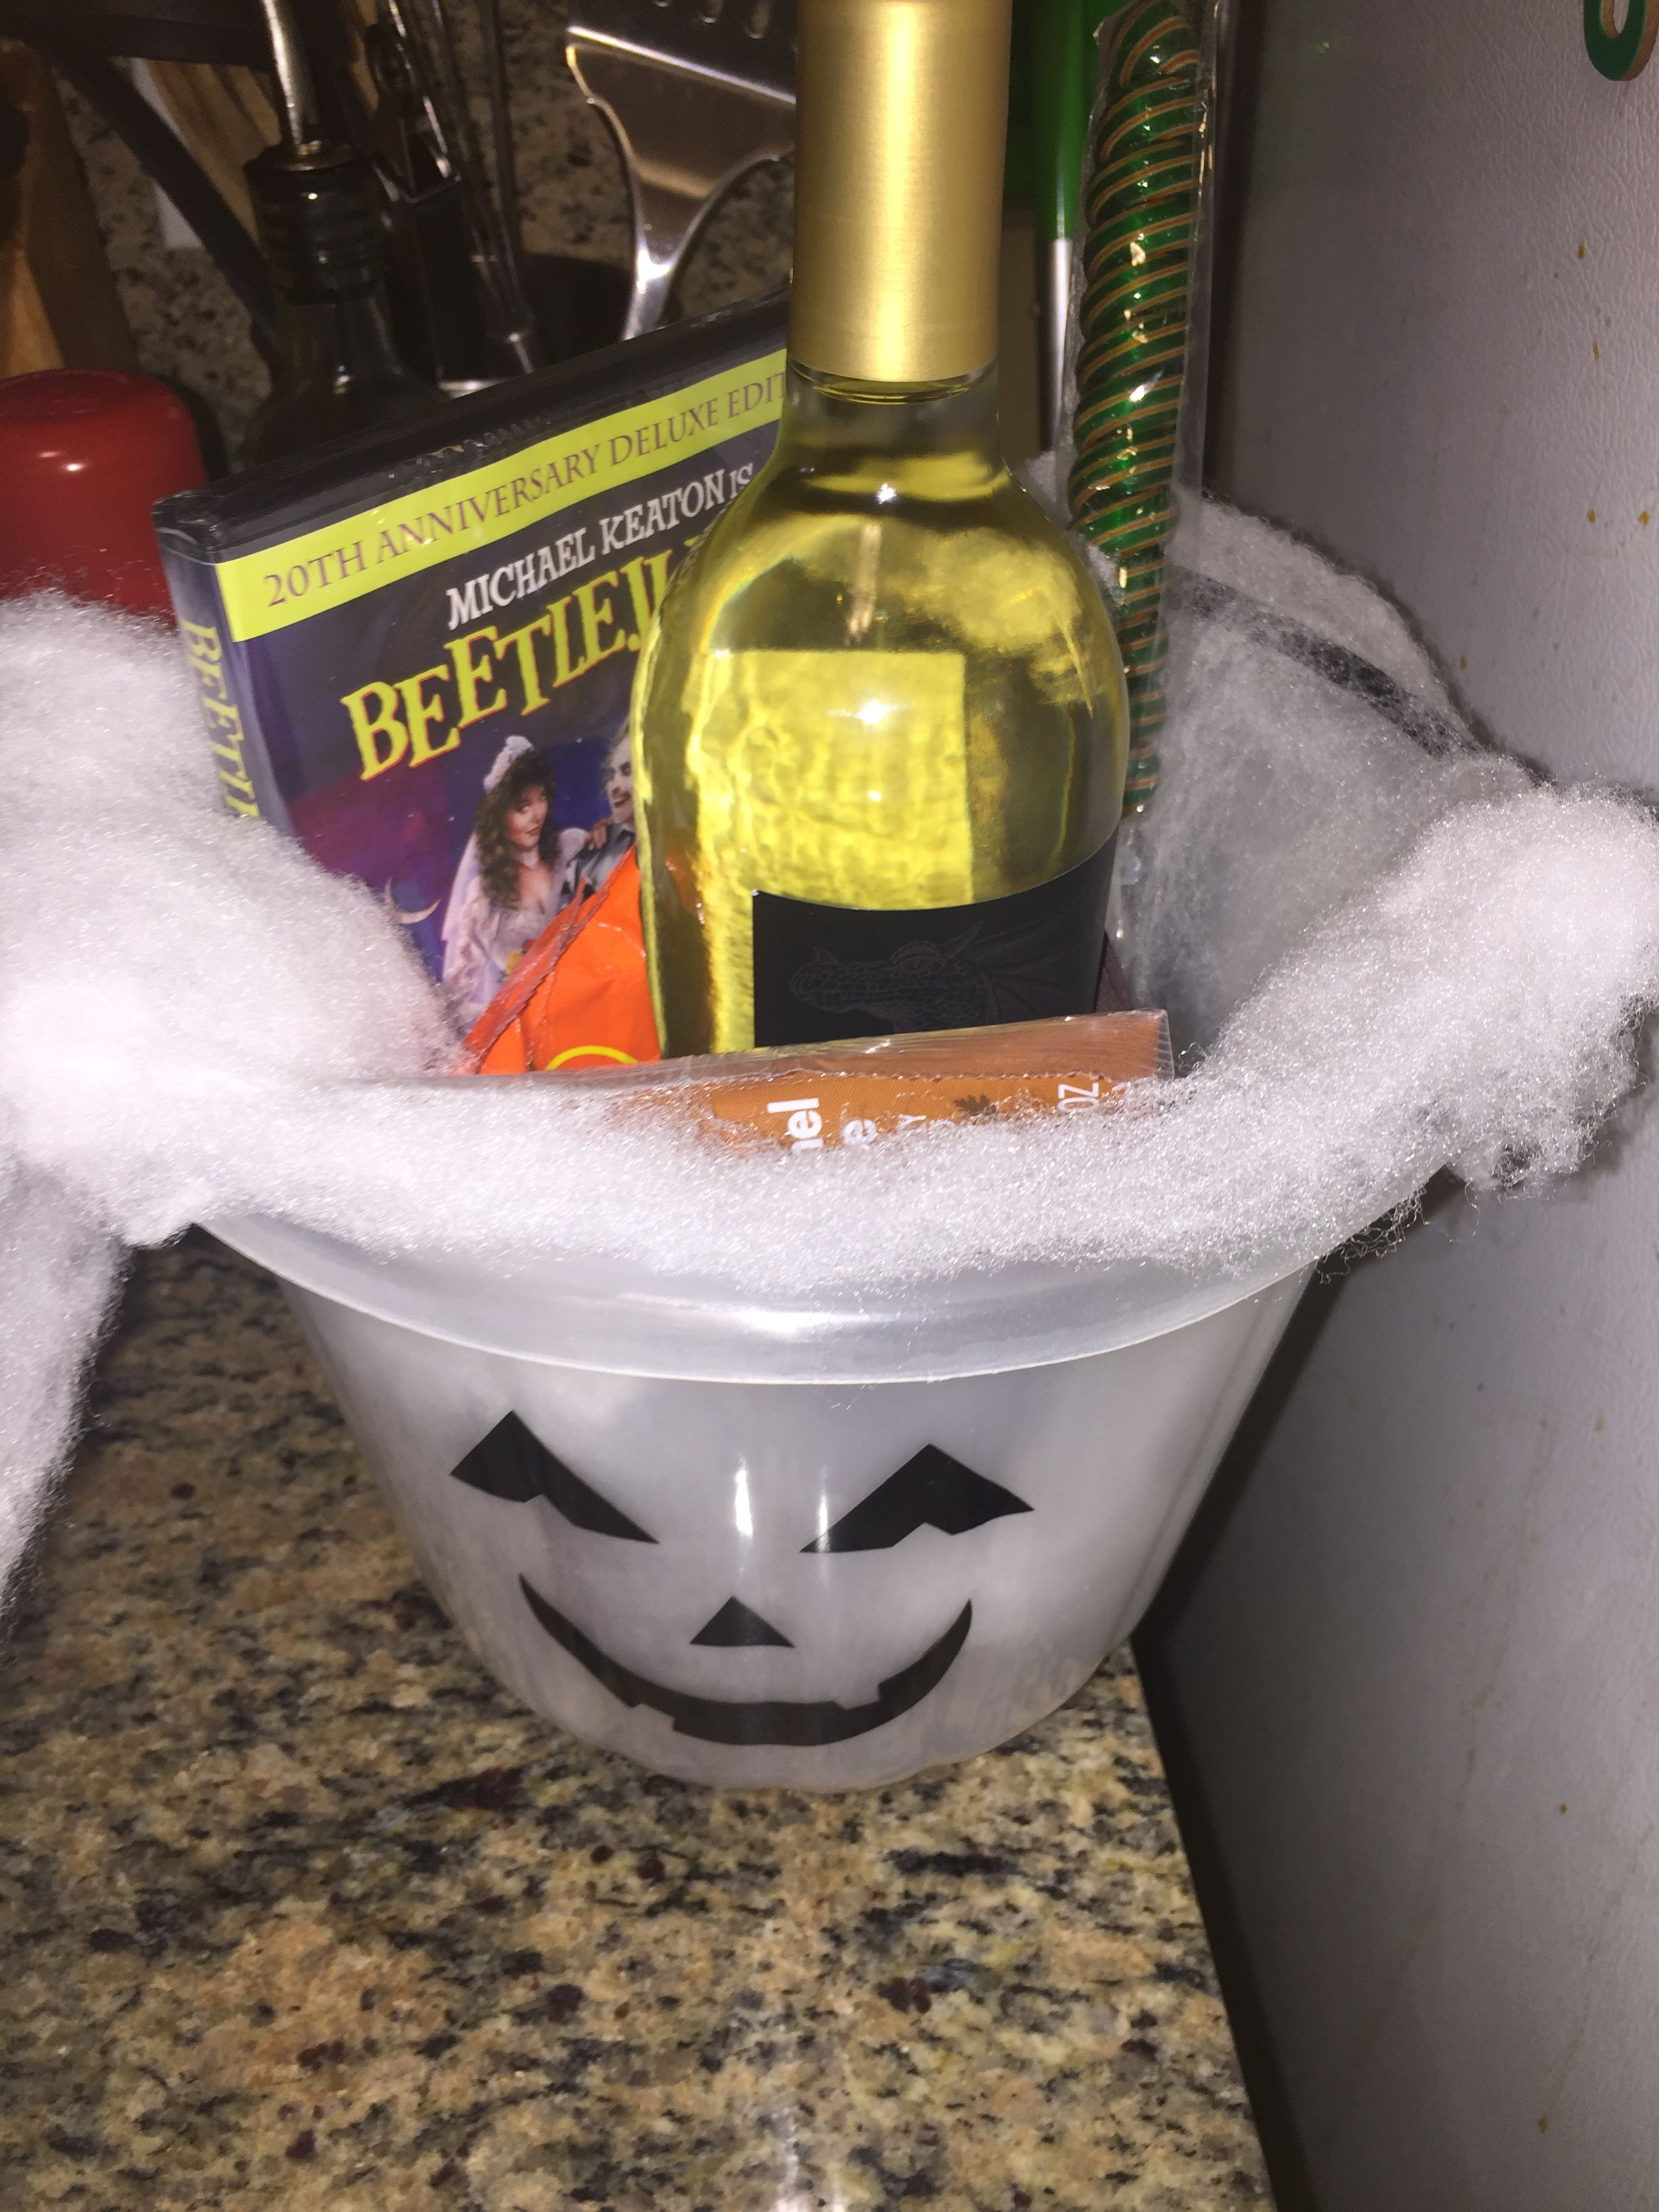 Halloween Costume contest prize ideas diy gift idea costume contest gift Halloween goodie bucket for adults I put wine , candy apple twizzlers, chocolates, mint gum, a lighter, a Halloween movie, candy apple lollipops and wala there u have it! #spookybasketideas